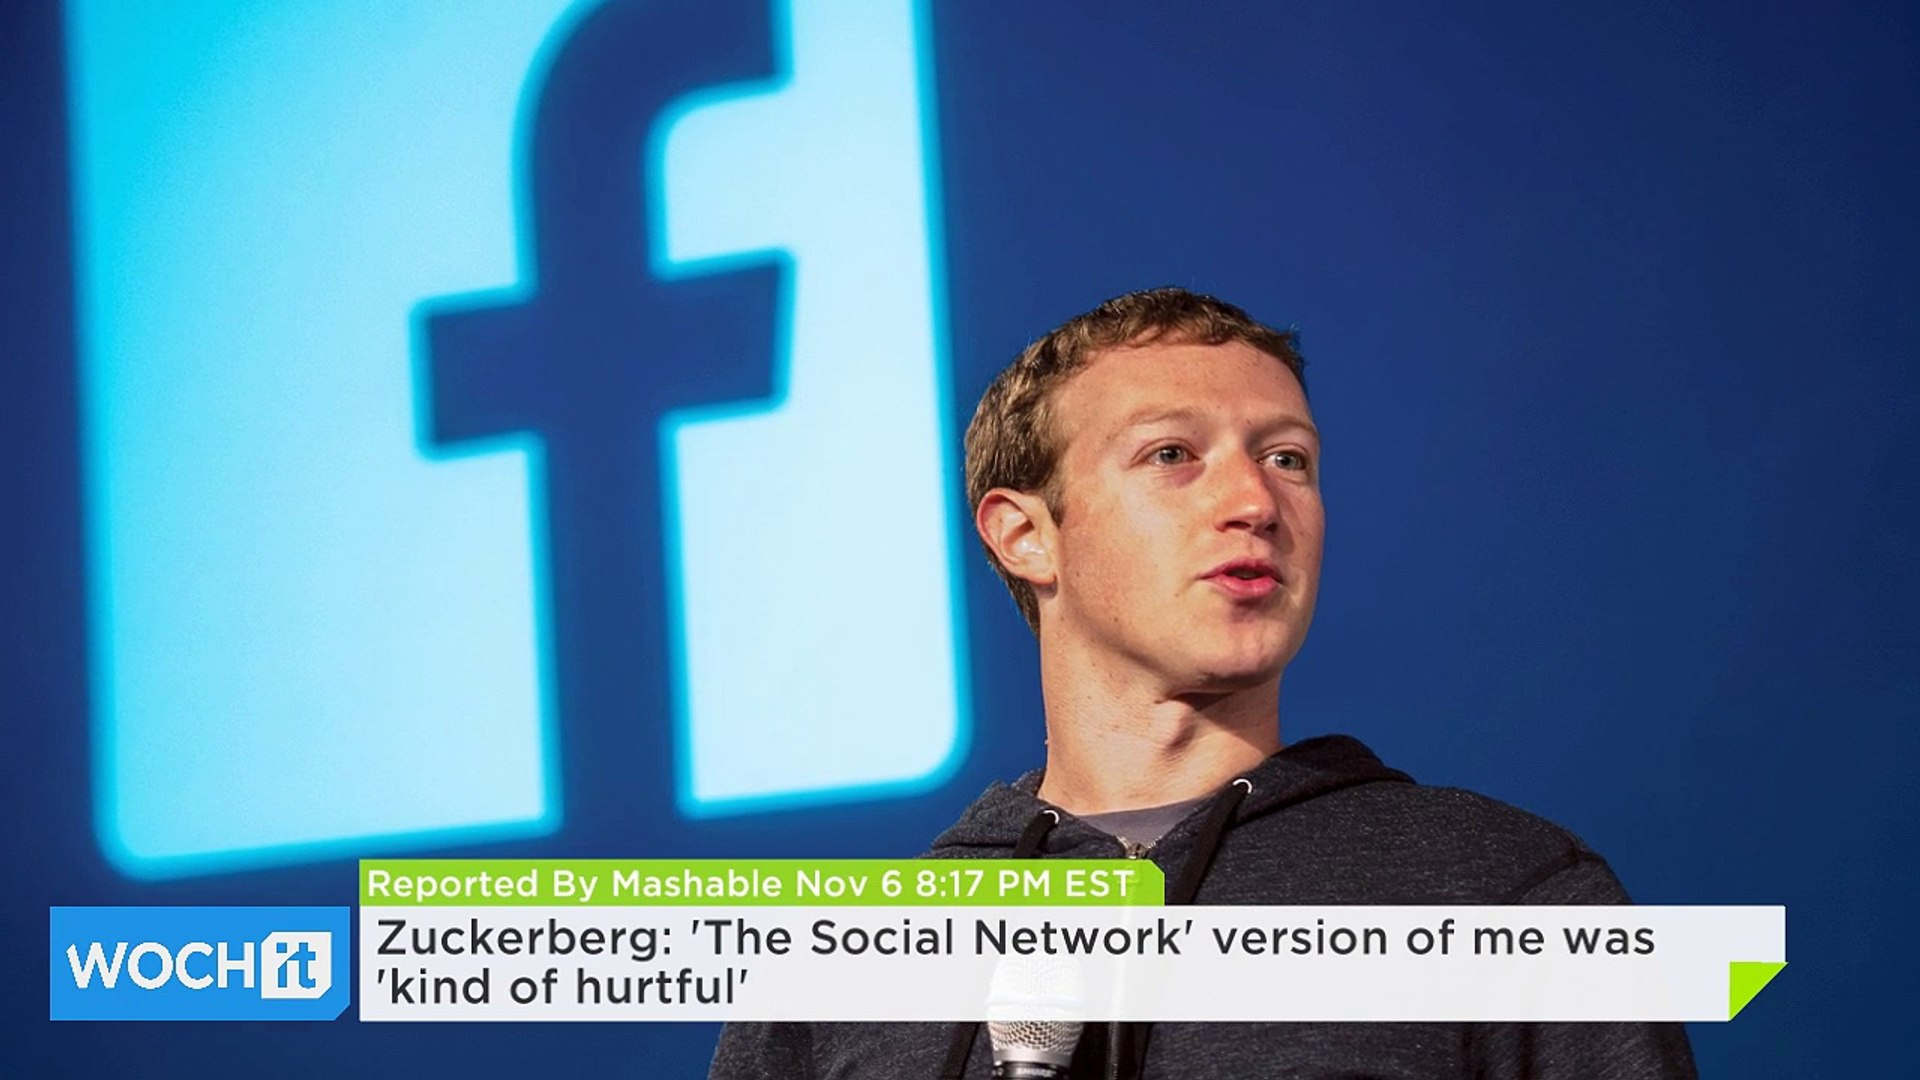 Zuckerberg The Social Network Version Of Me Was Kind Of Hurtful